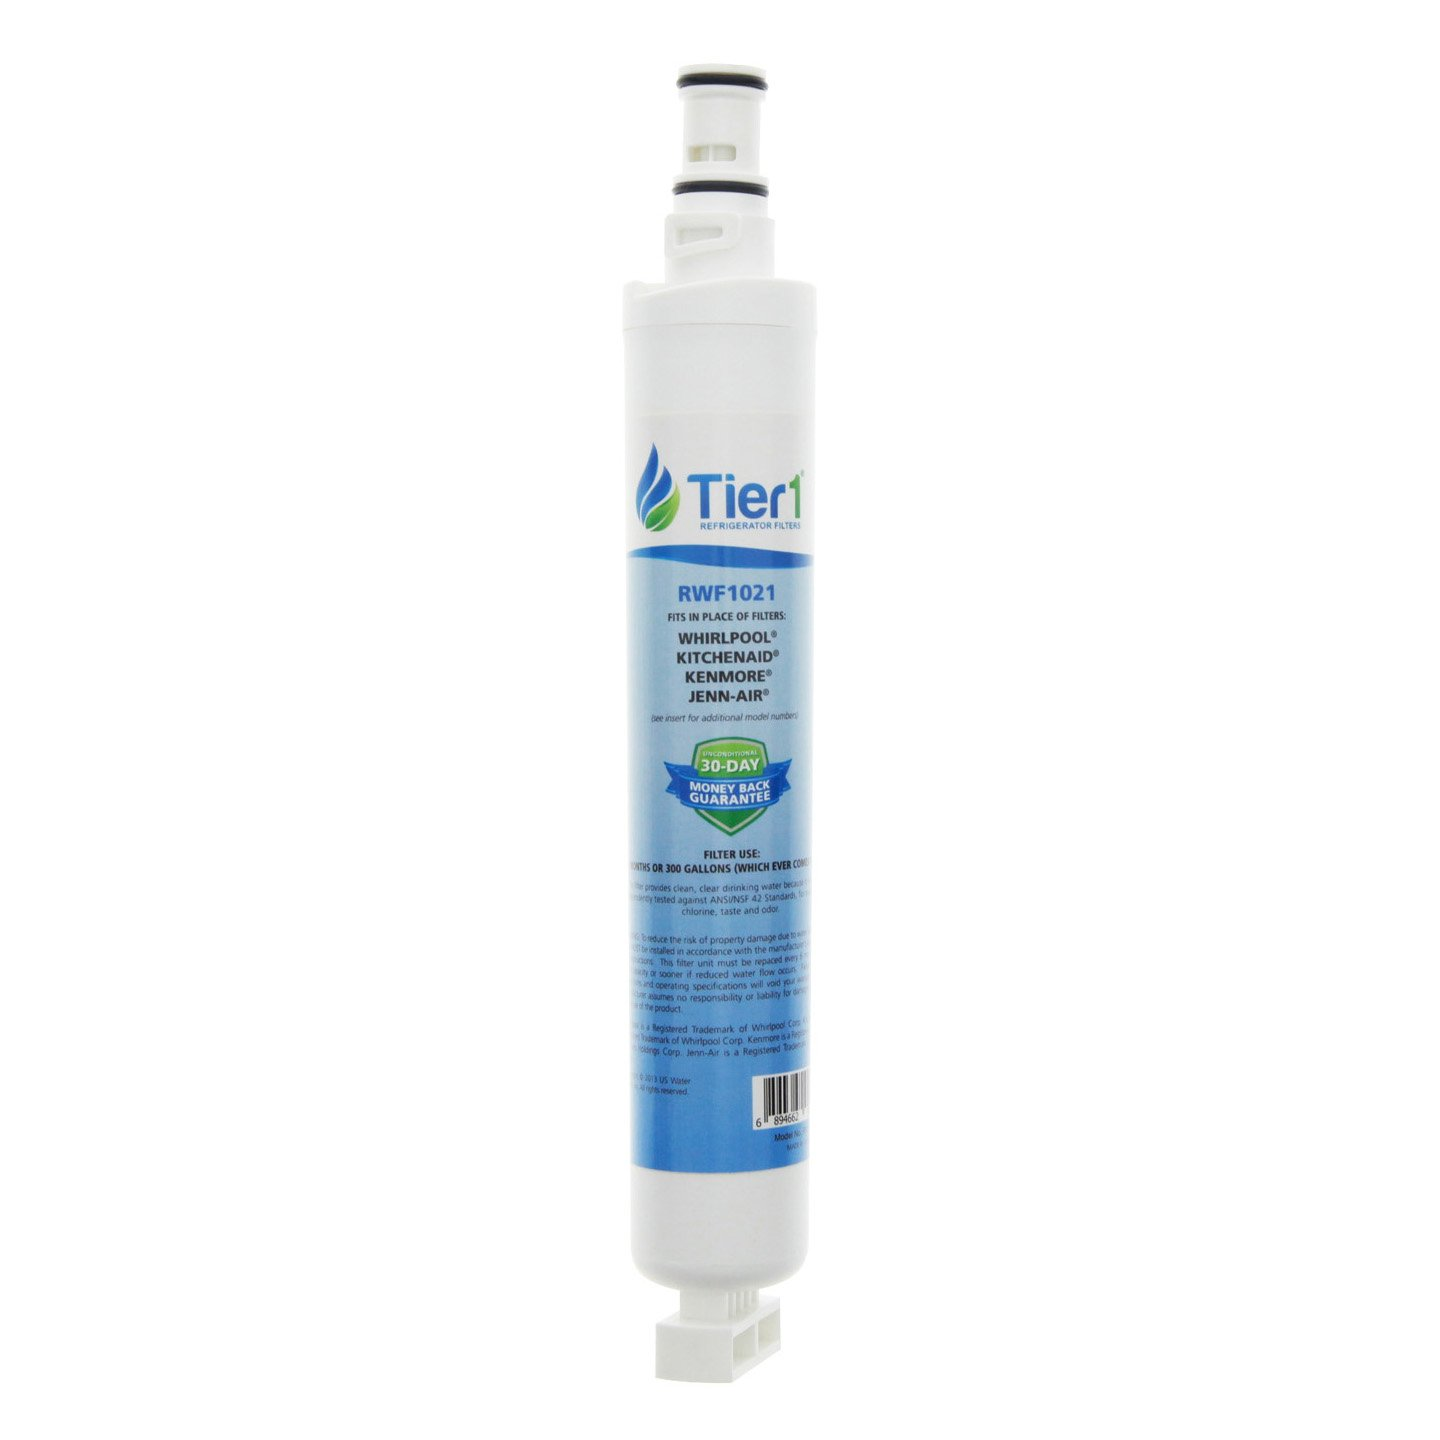 Tier1 Replacement for Whirlpool 4396701, EDR6D1, Kenmore 9915, 46-9915, NL120V, 4396701, 4396702 Refrigerator Water Filter